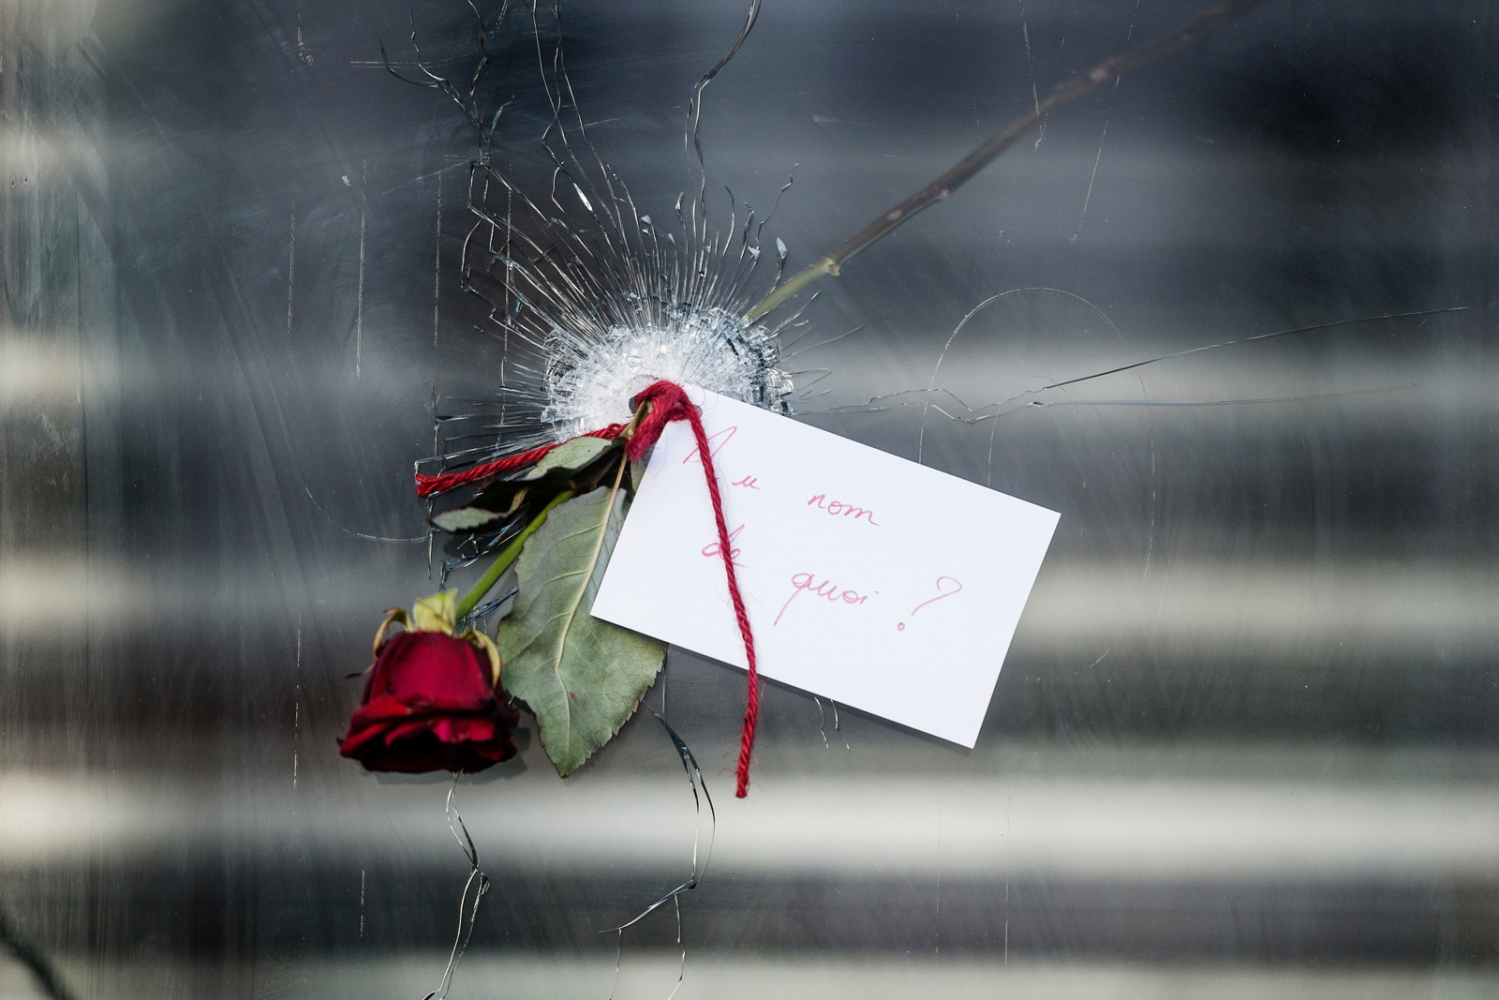 A rose tucked into a bullet hole in a window next door to La Belle Equipe, one of the restaurants targeted in the terrorist attacks in Paris that left over a hundred people dead.